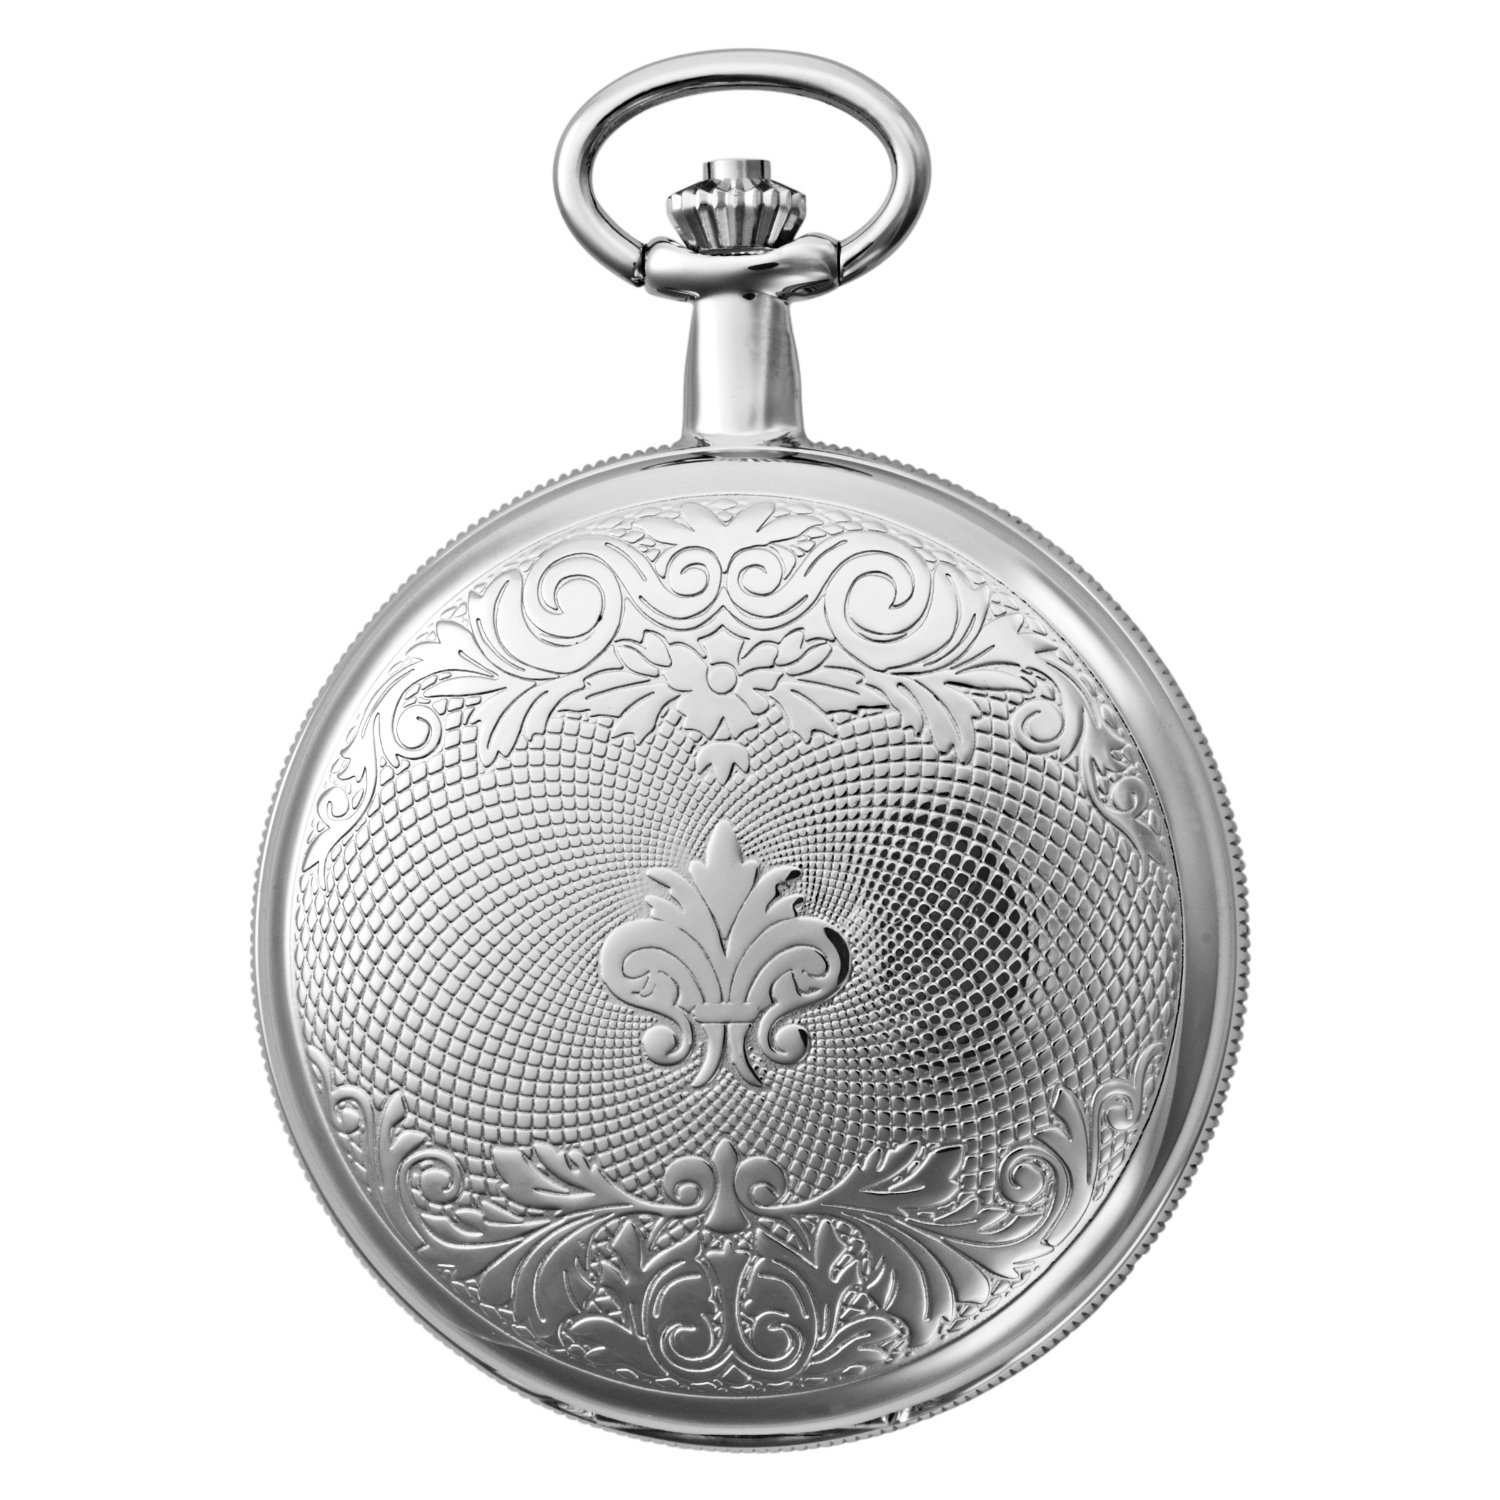 Gotham Men's Silver-Tone Mechanical Pocket Watch with Desktop Stand # GWC14051S-ST by Gotham (Image #5)